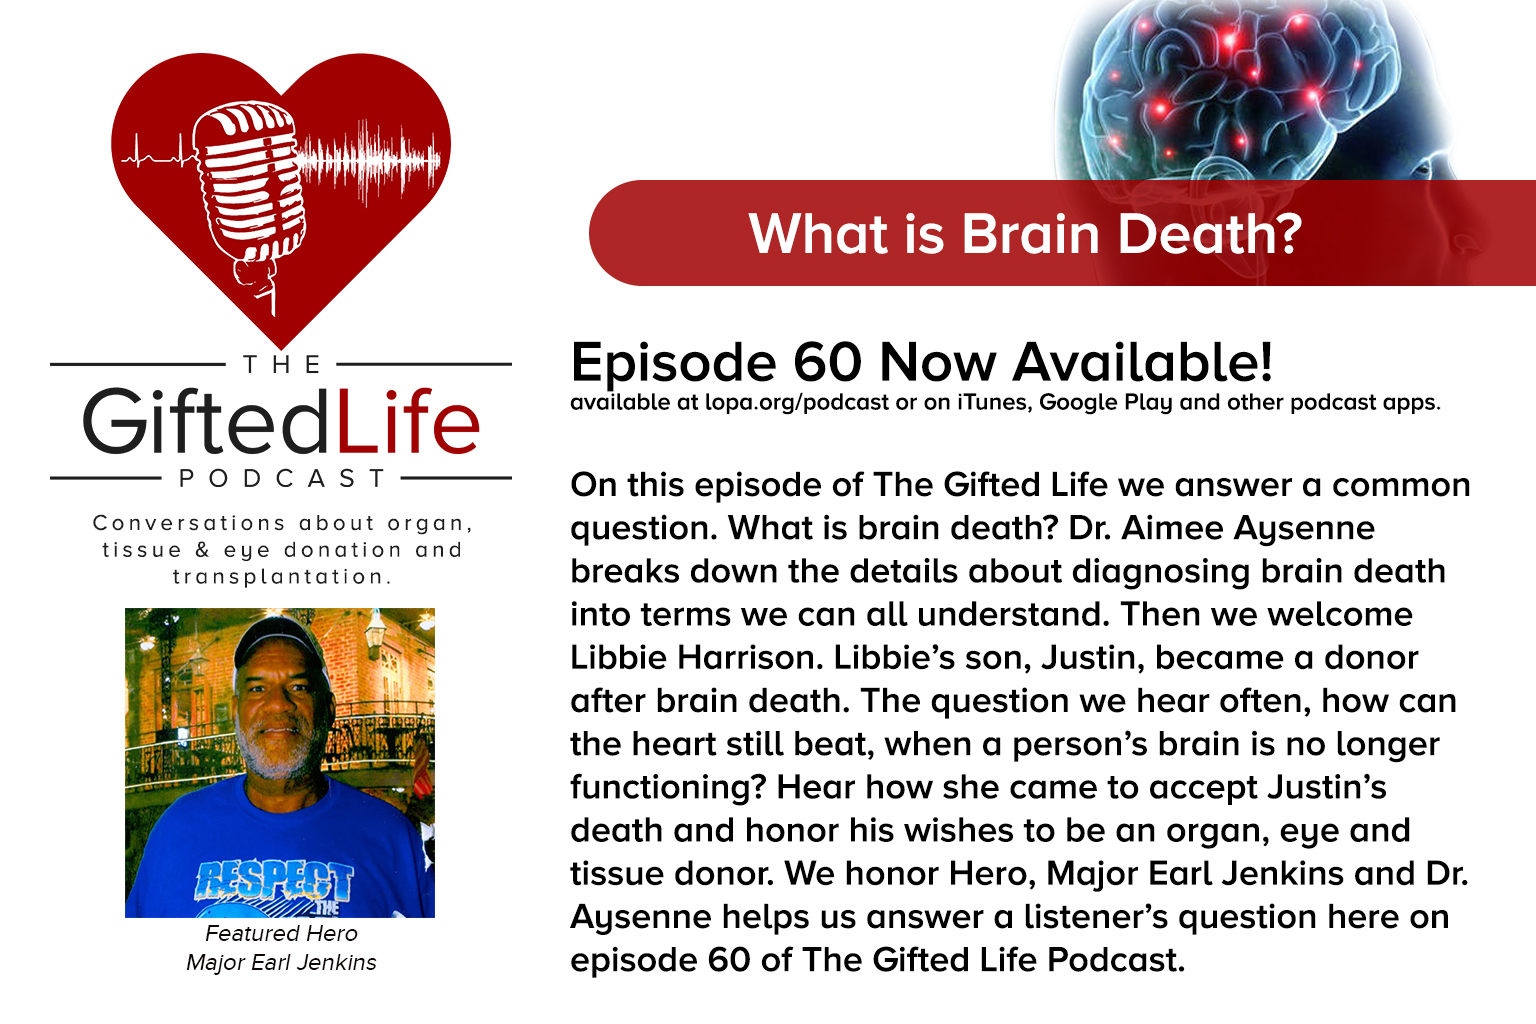 Click here to listen to episode 60 now